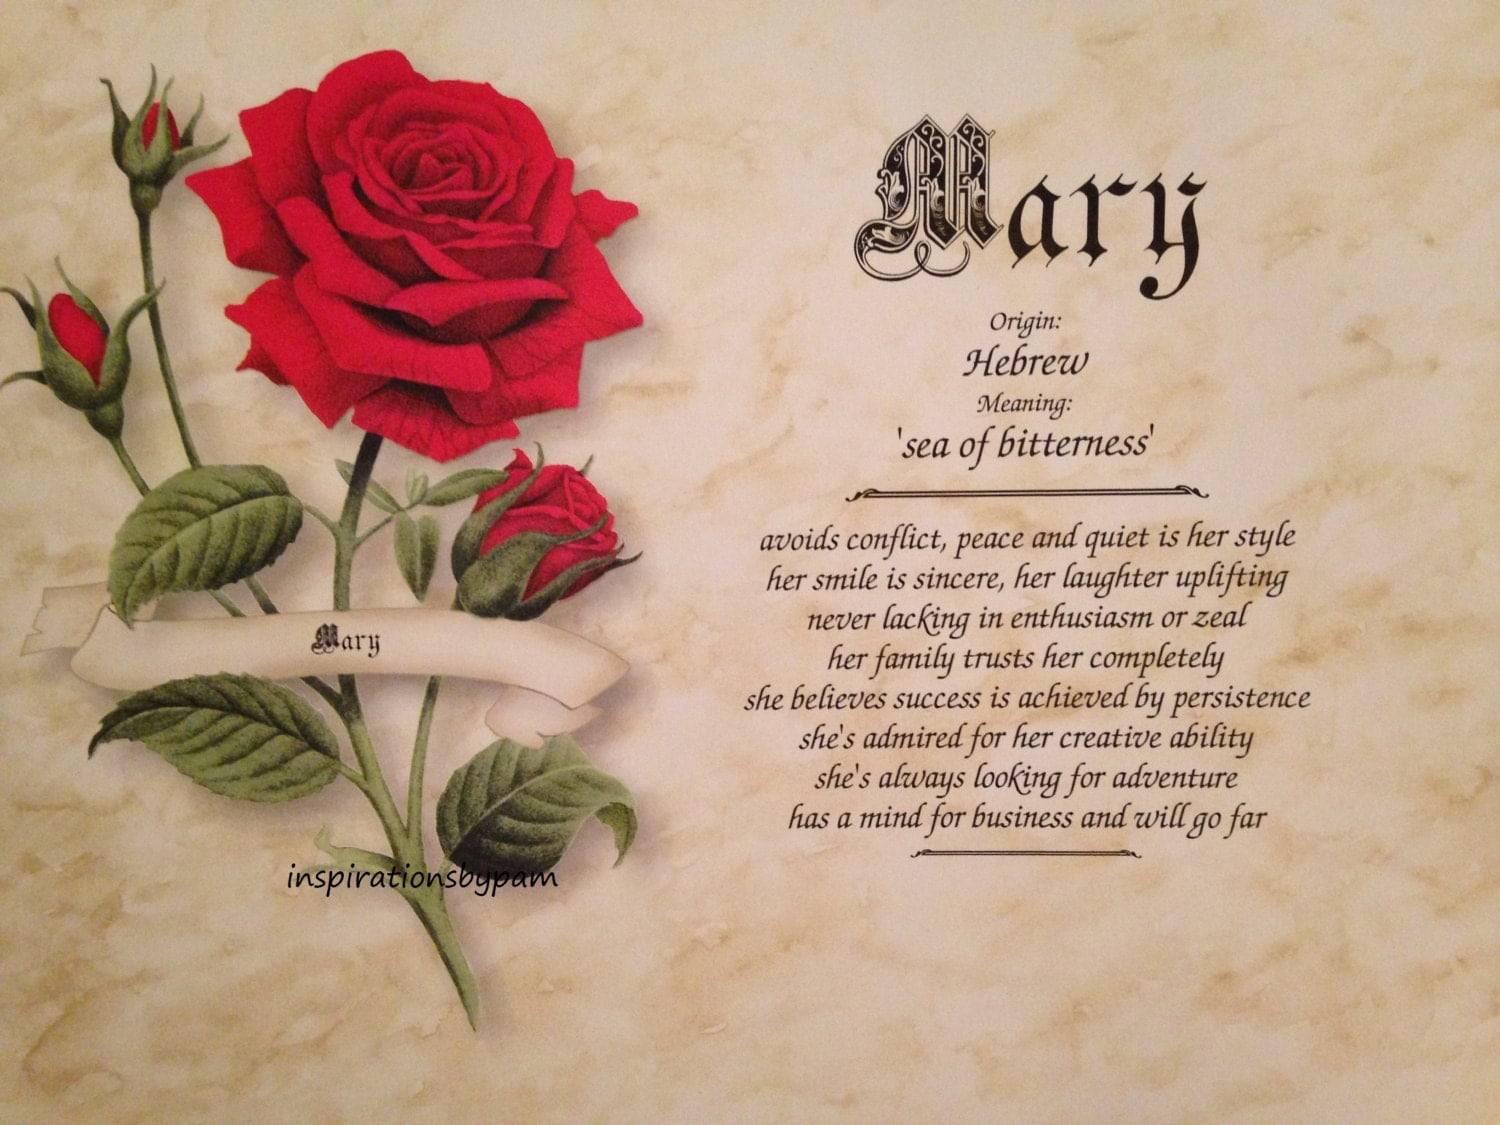 Mary First Name Meaning Art by inspirationsbypam on Etsy